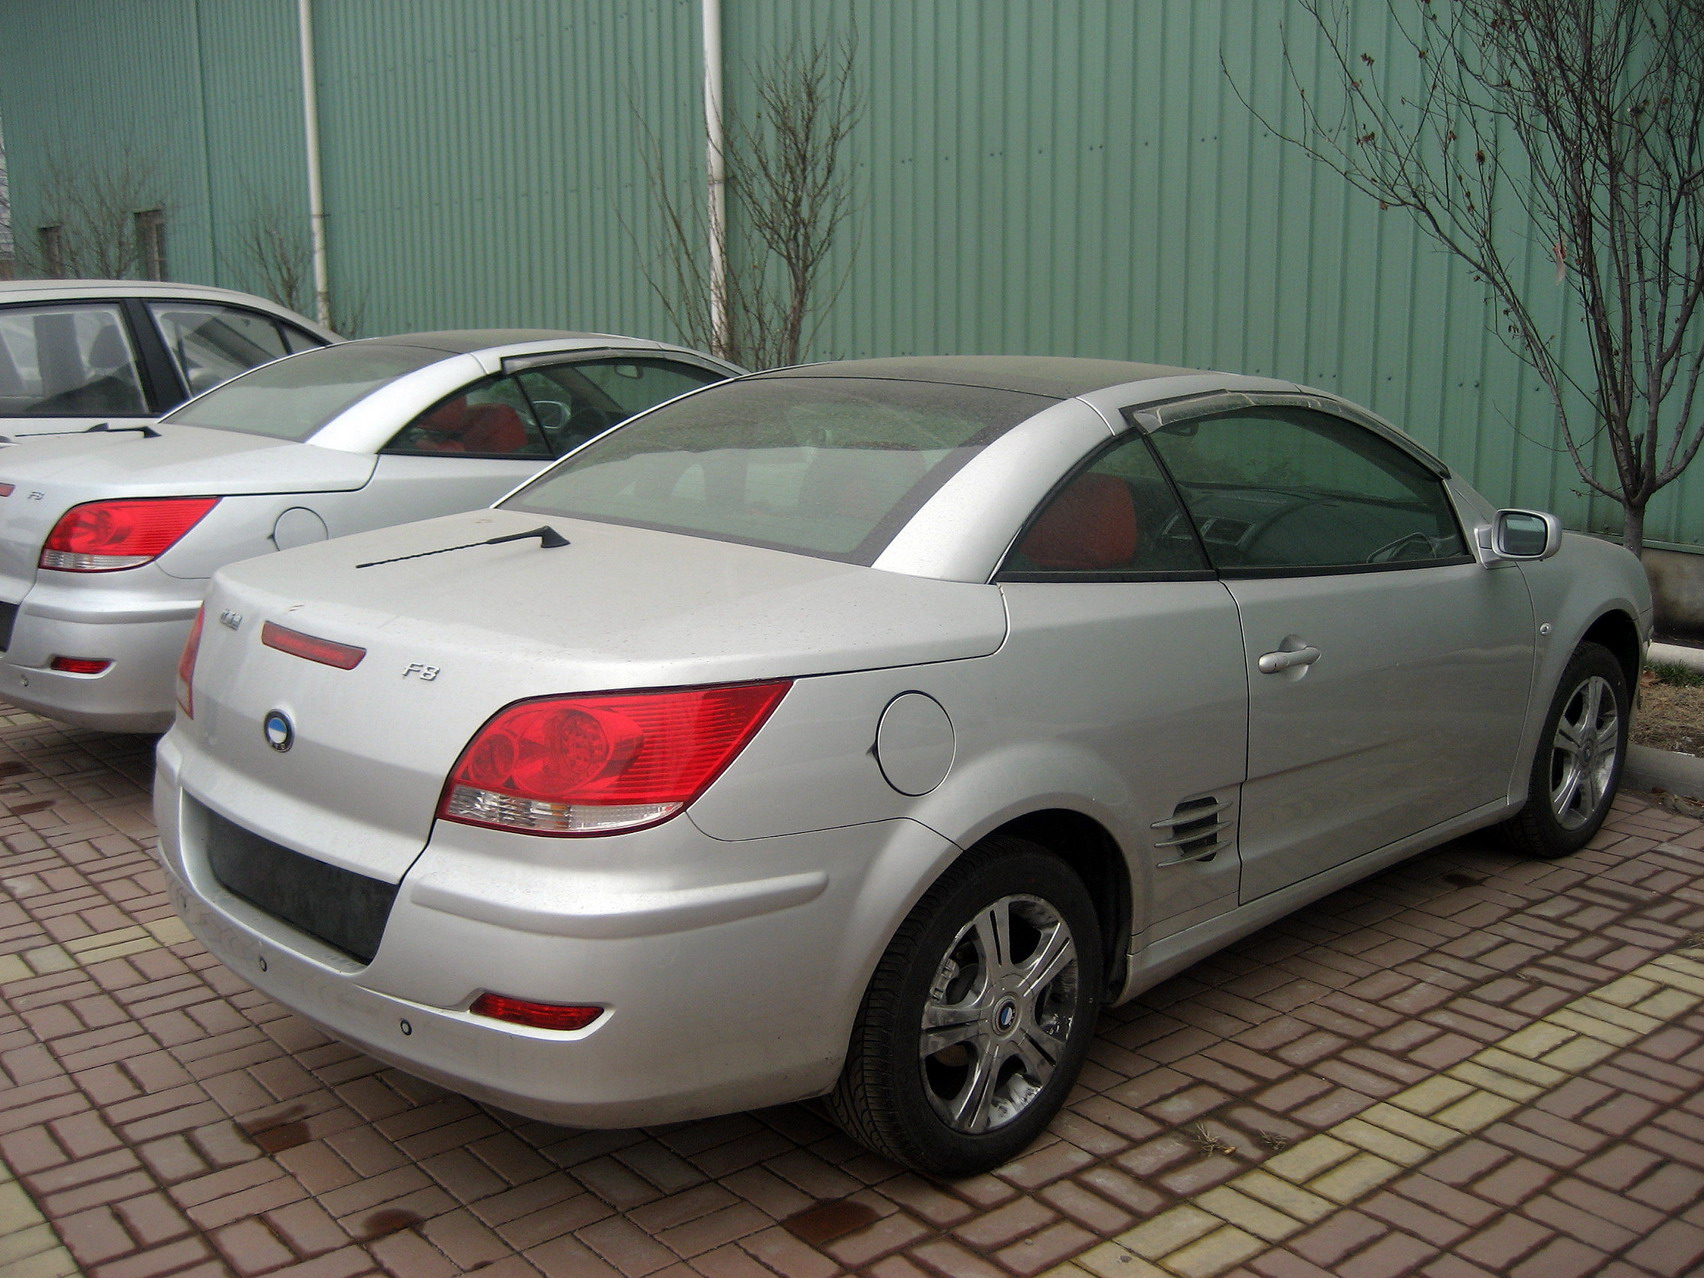 Byd s8 photo - 2